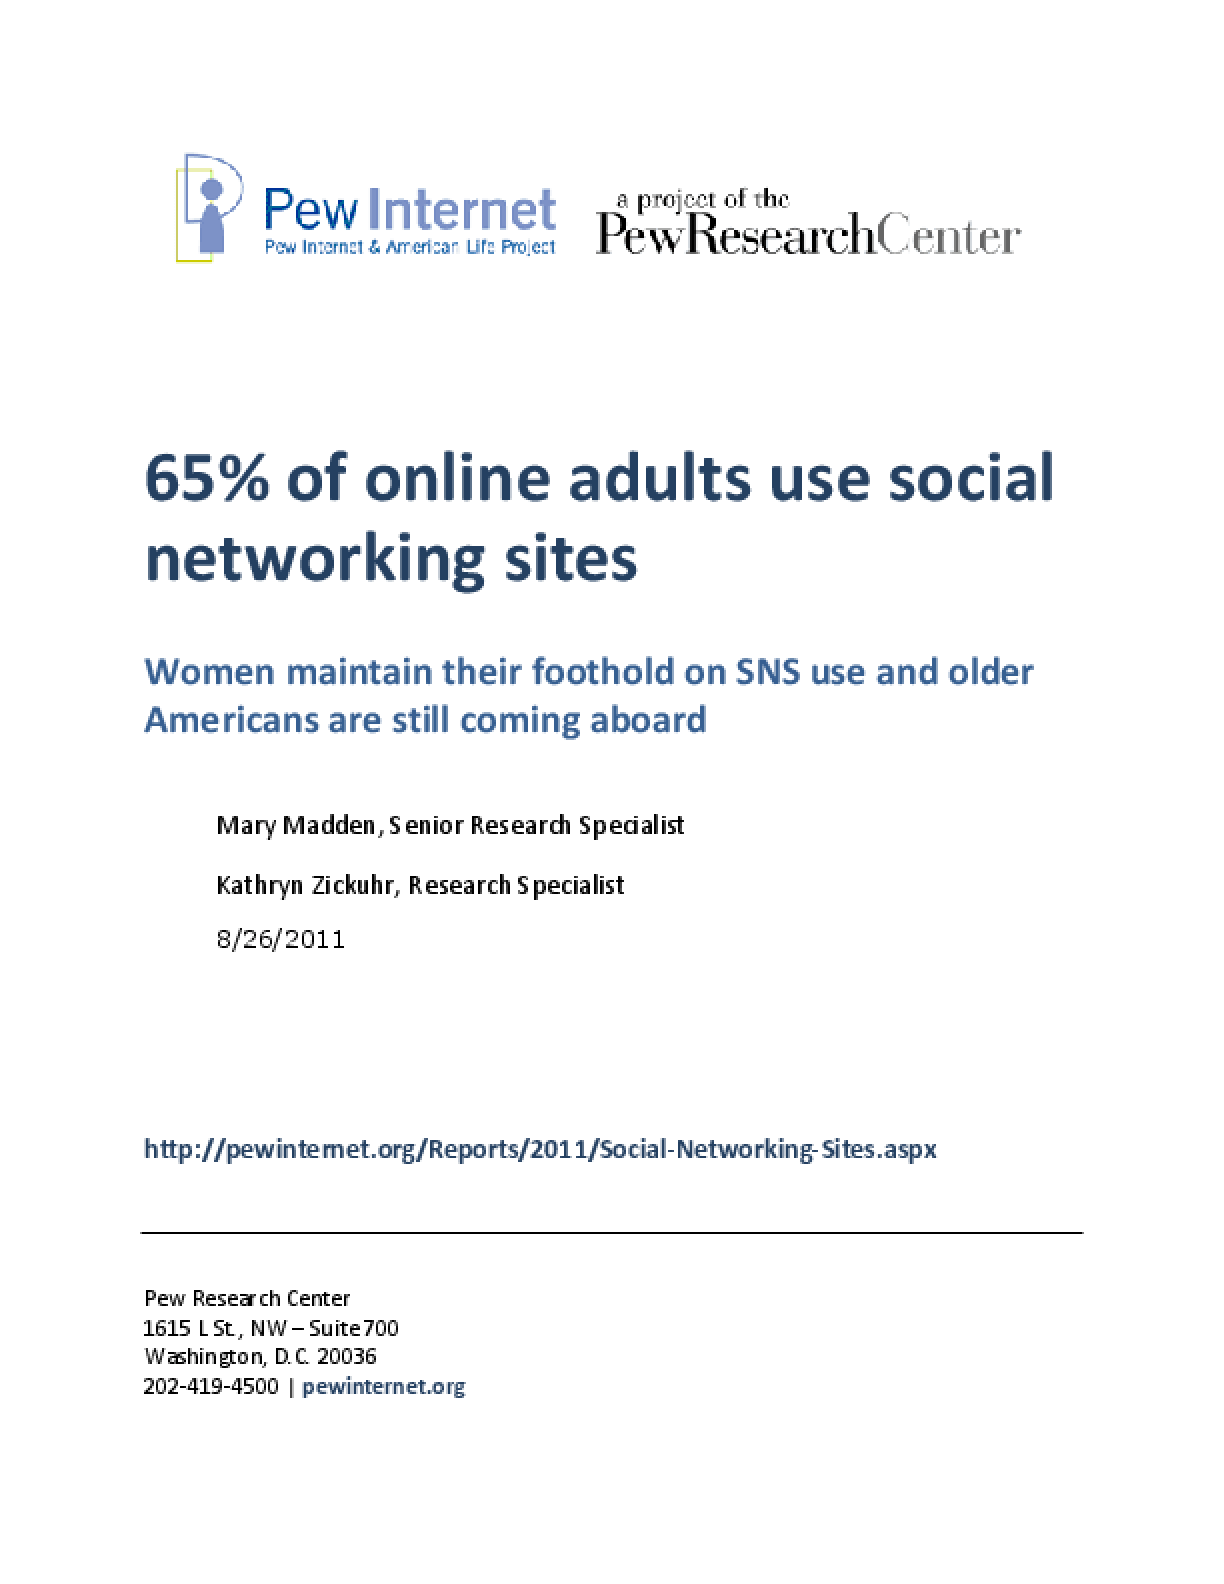 65% of Online Adults Use Social Networking Sites